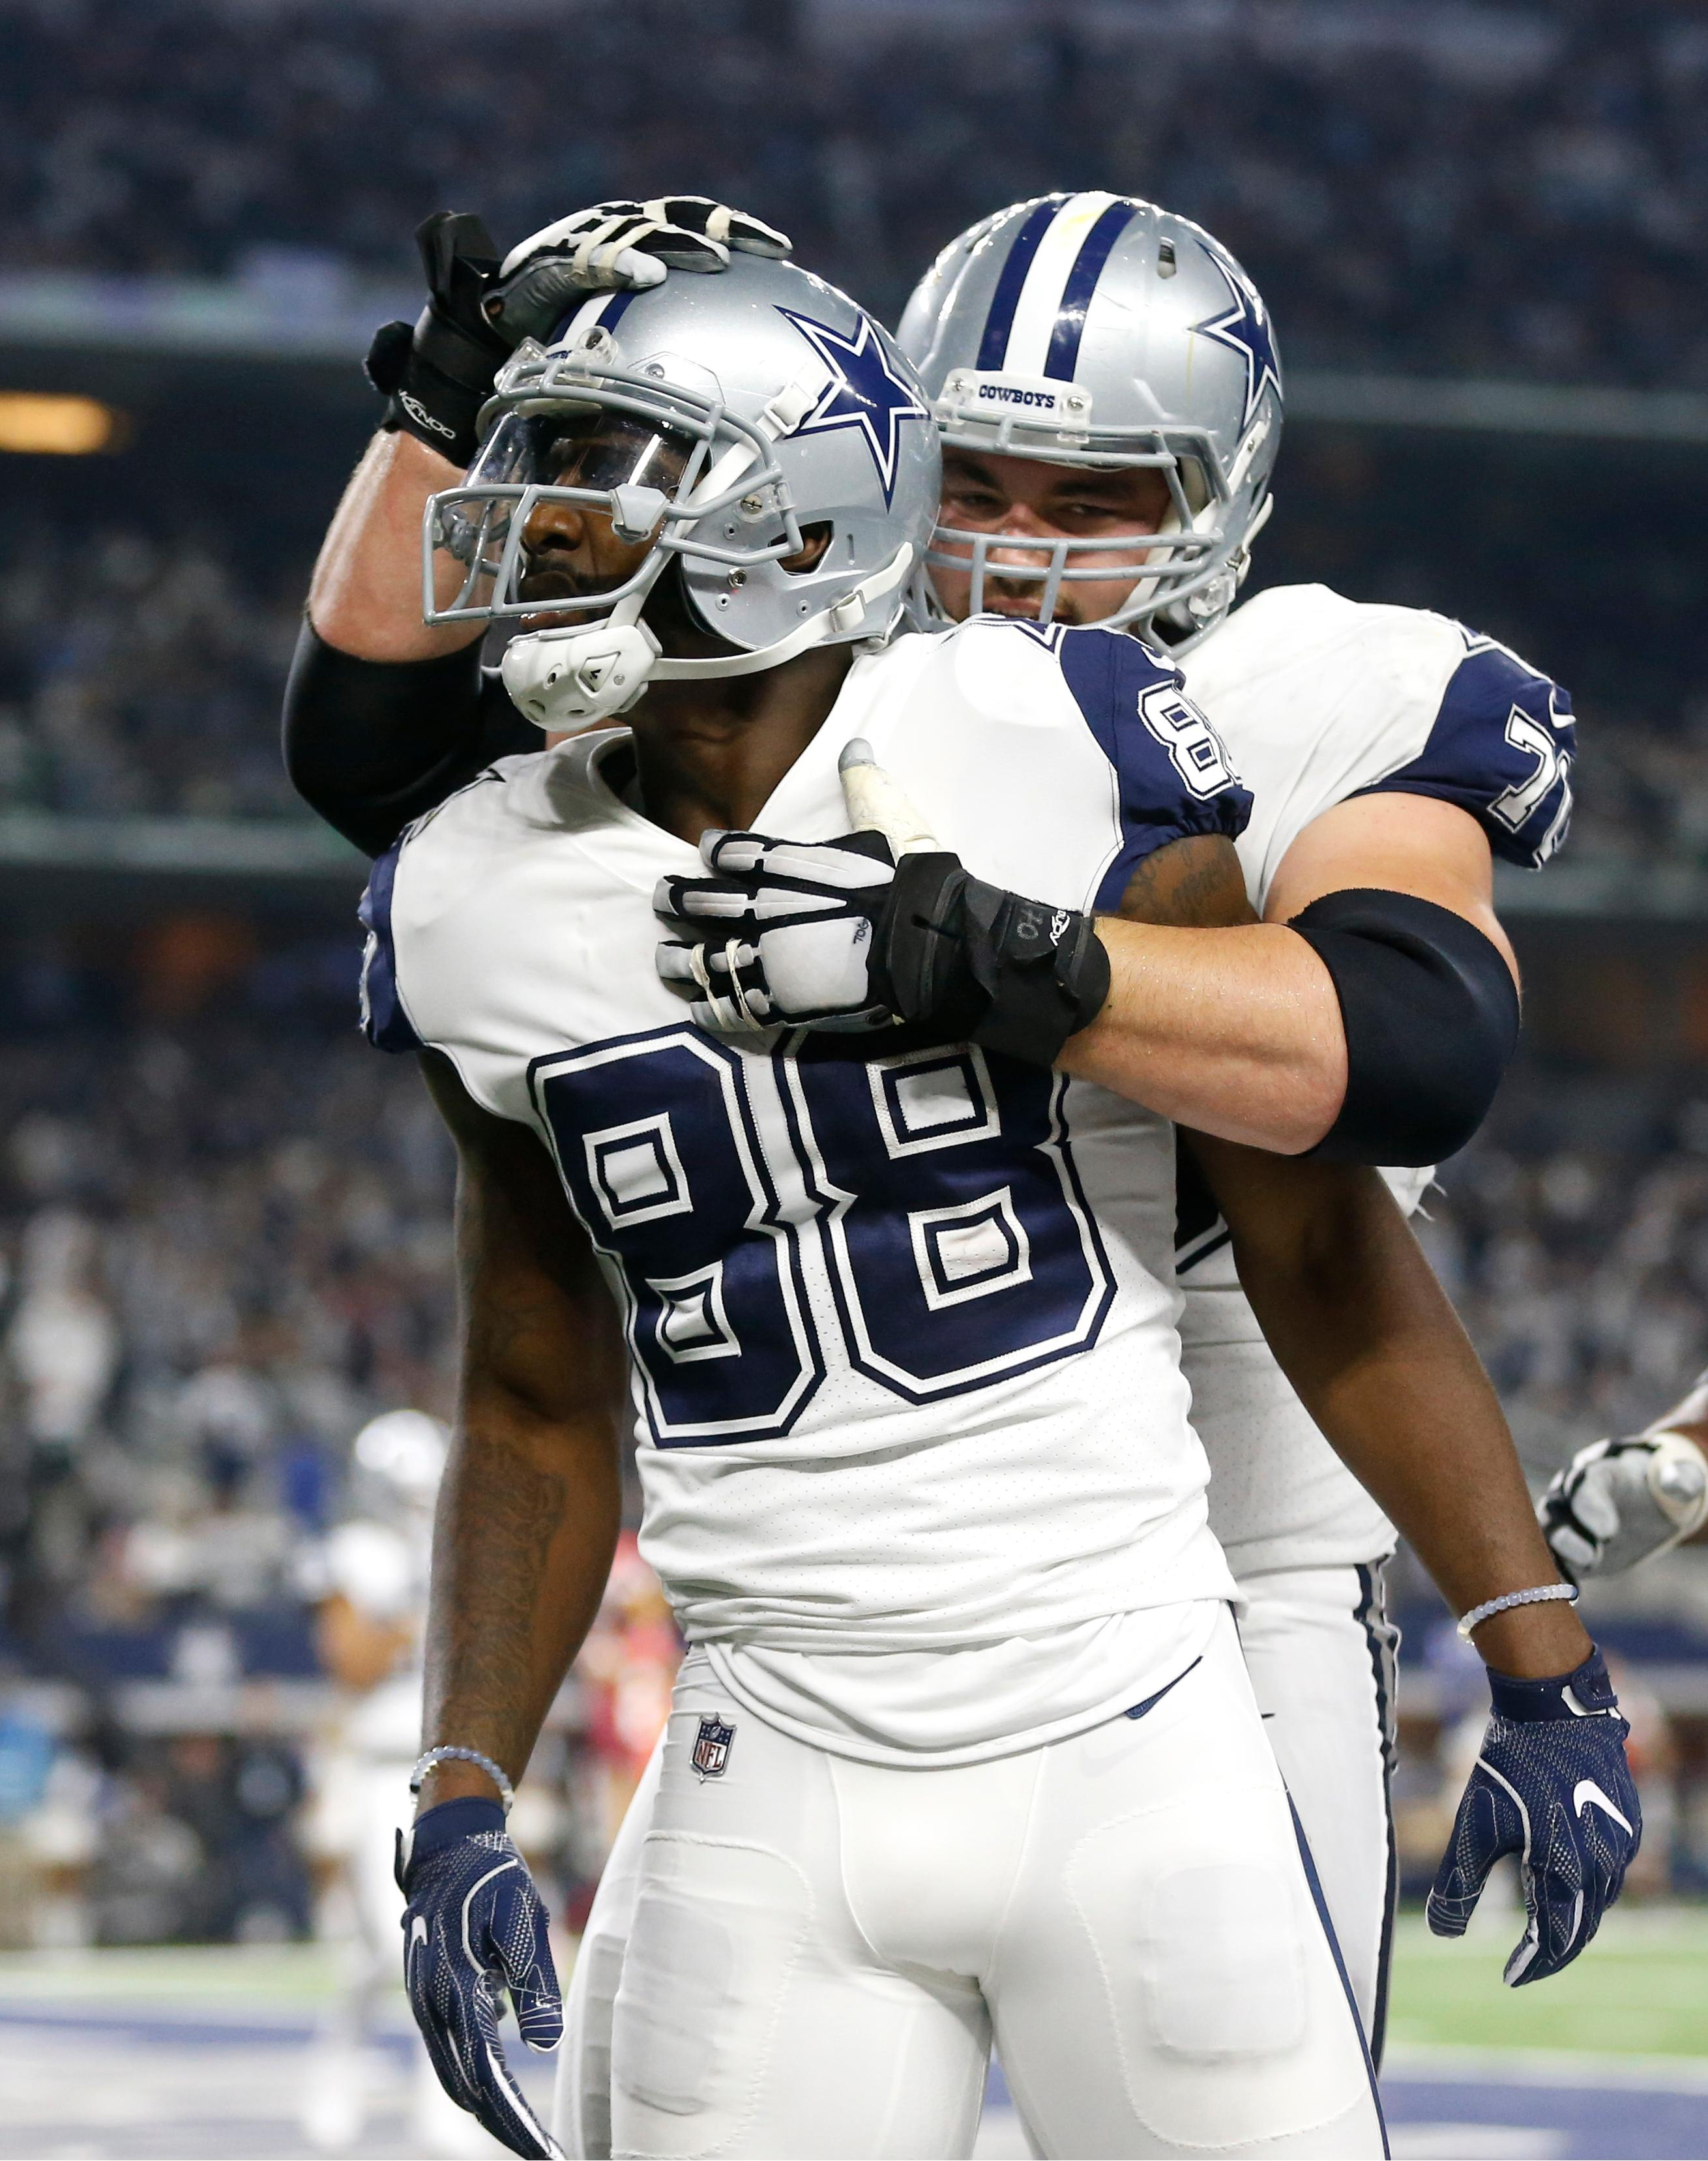 Dallas Cowboys wide receiver Dez Bryant (88) and guard Zack Martin, rear, celebrate a touchdown scored on a catch by Bryant in the second half of an NFL football game against the Washington Redskins on Thursday, Nov. 30, 2017, in Arlington, Texas. (AP Photo/Ron Jenkins)